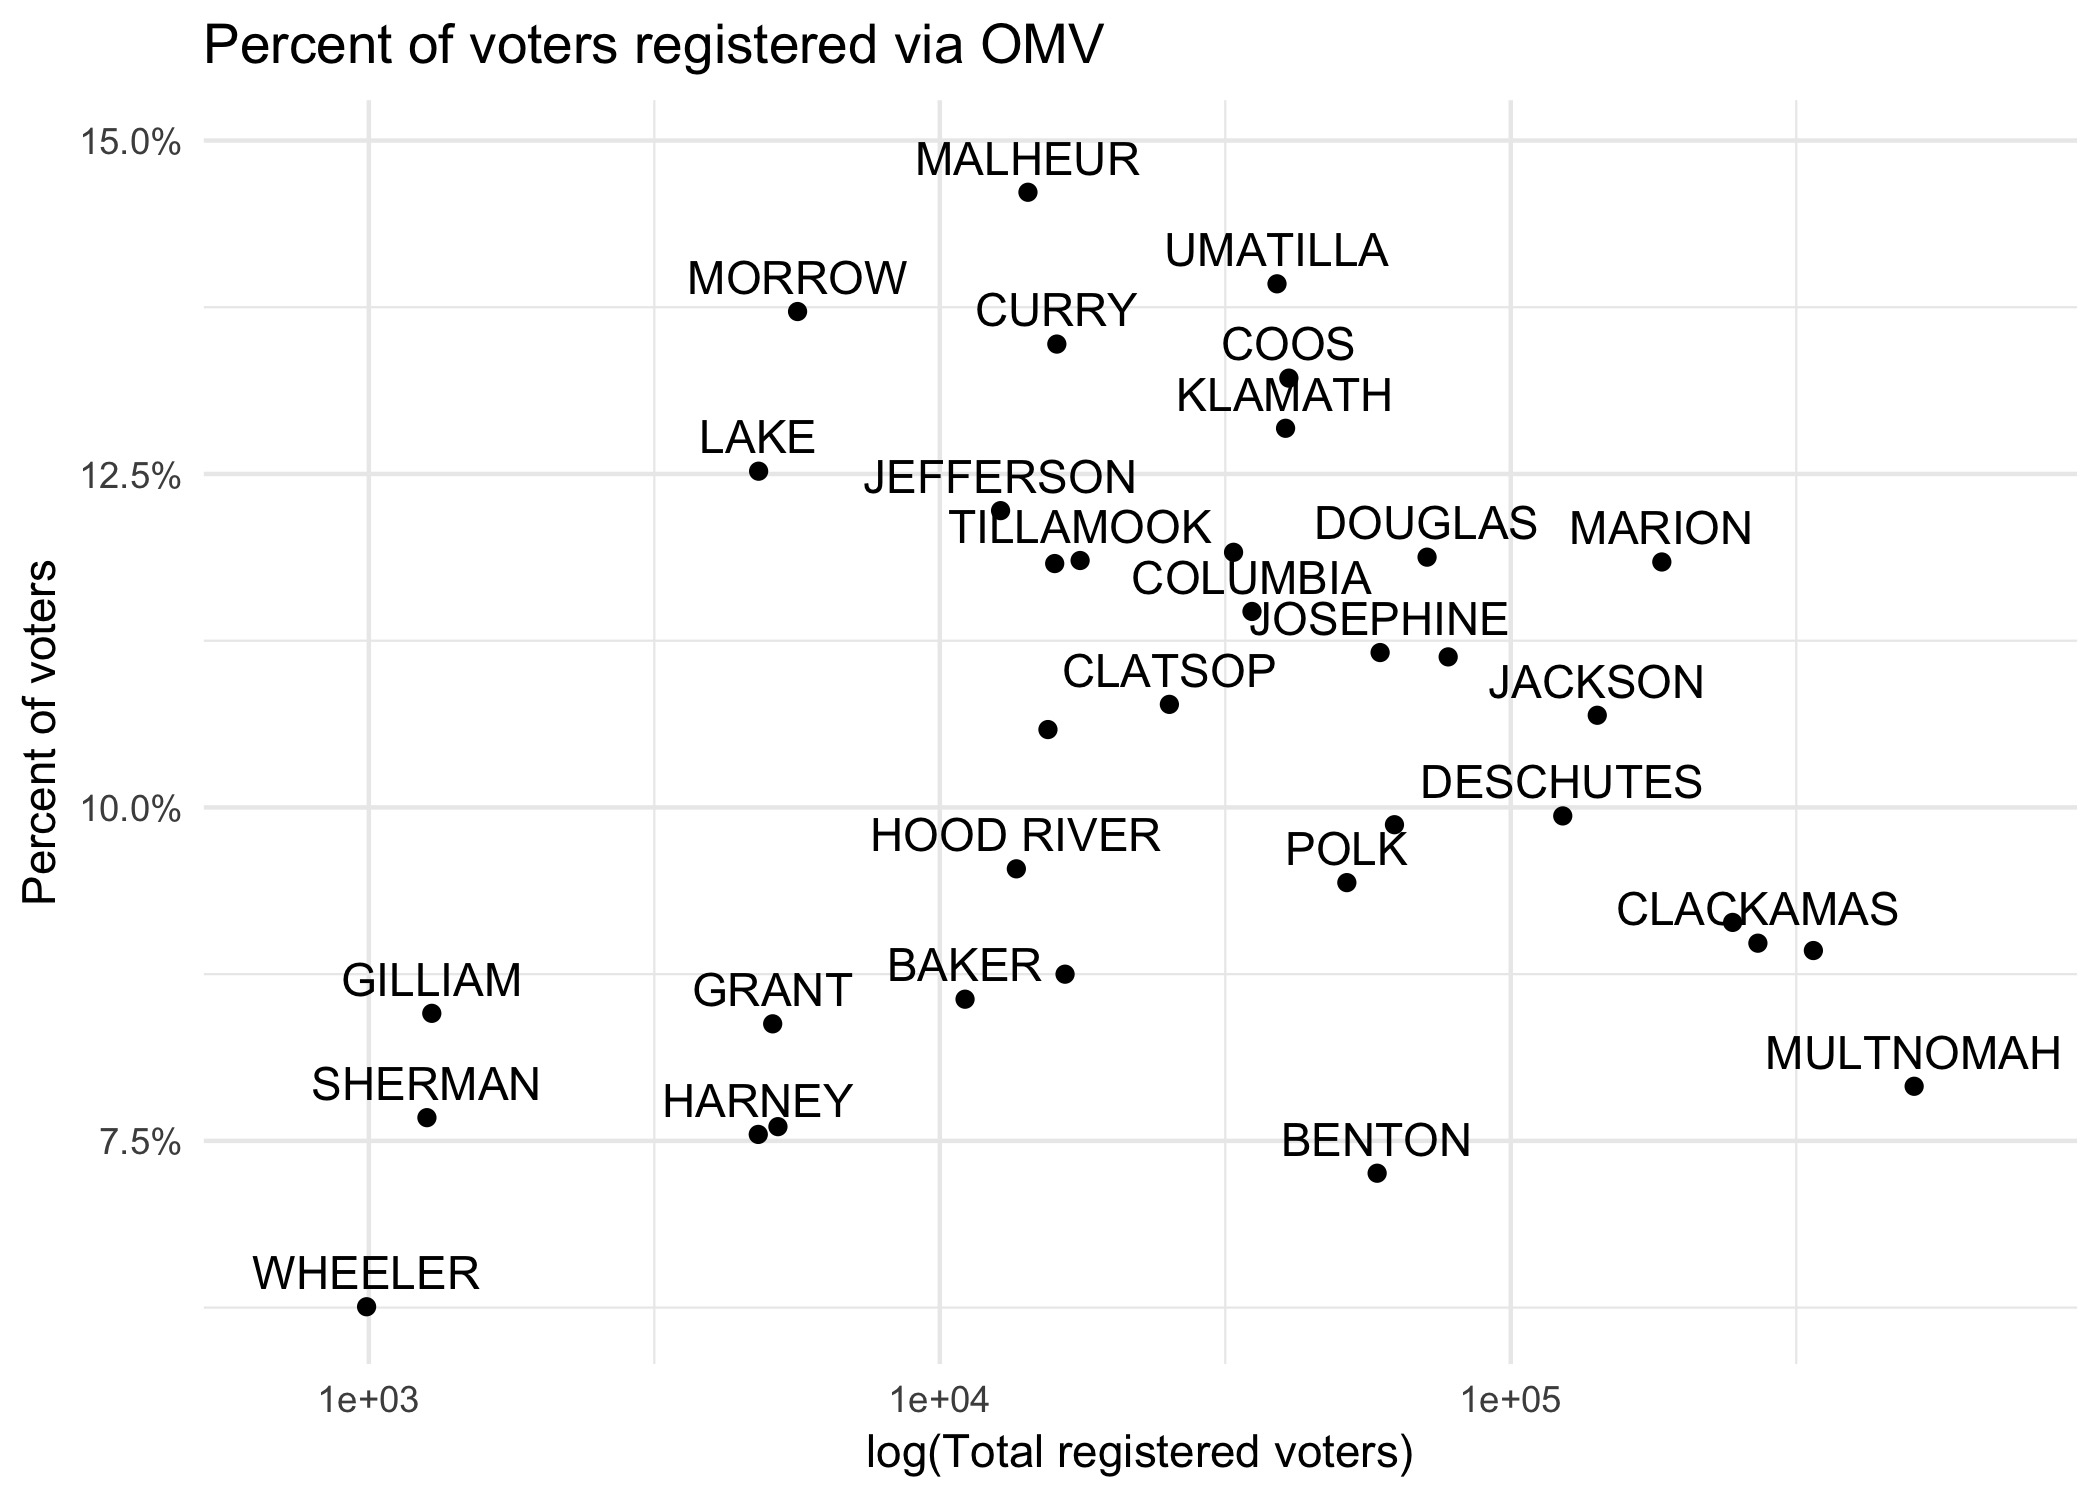 A scatter plot of log county population and percent of voters registered via OMV